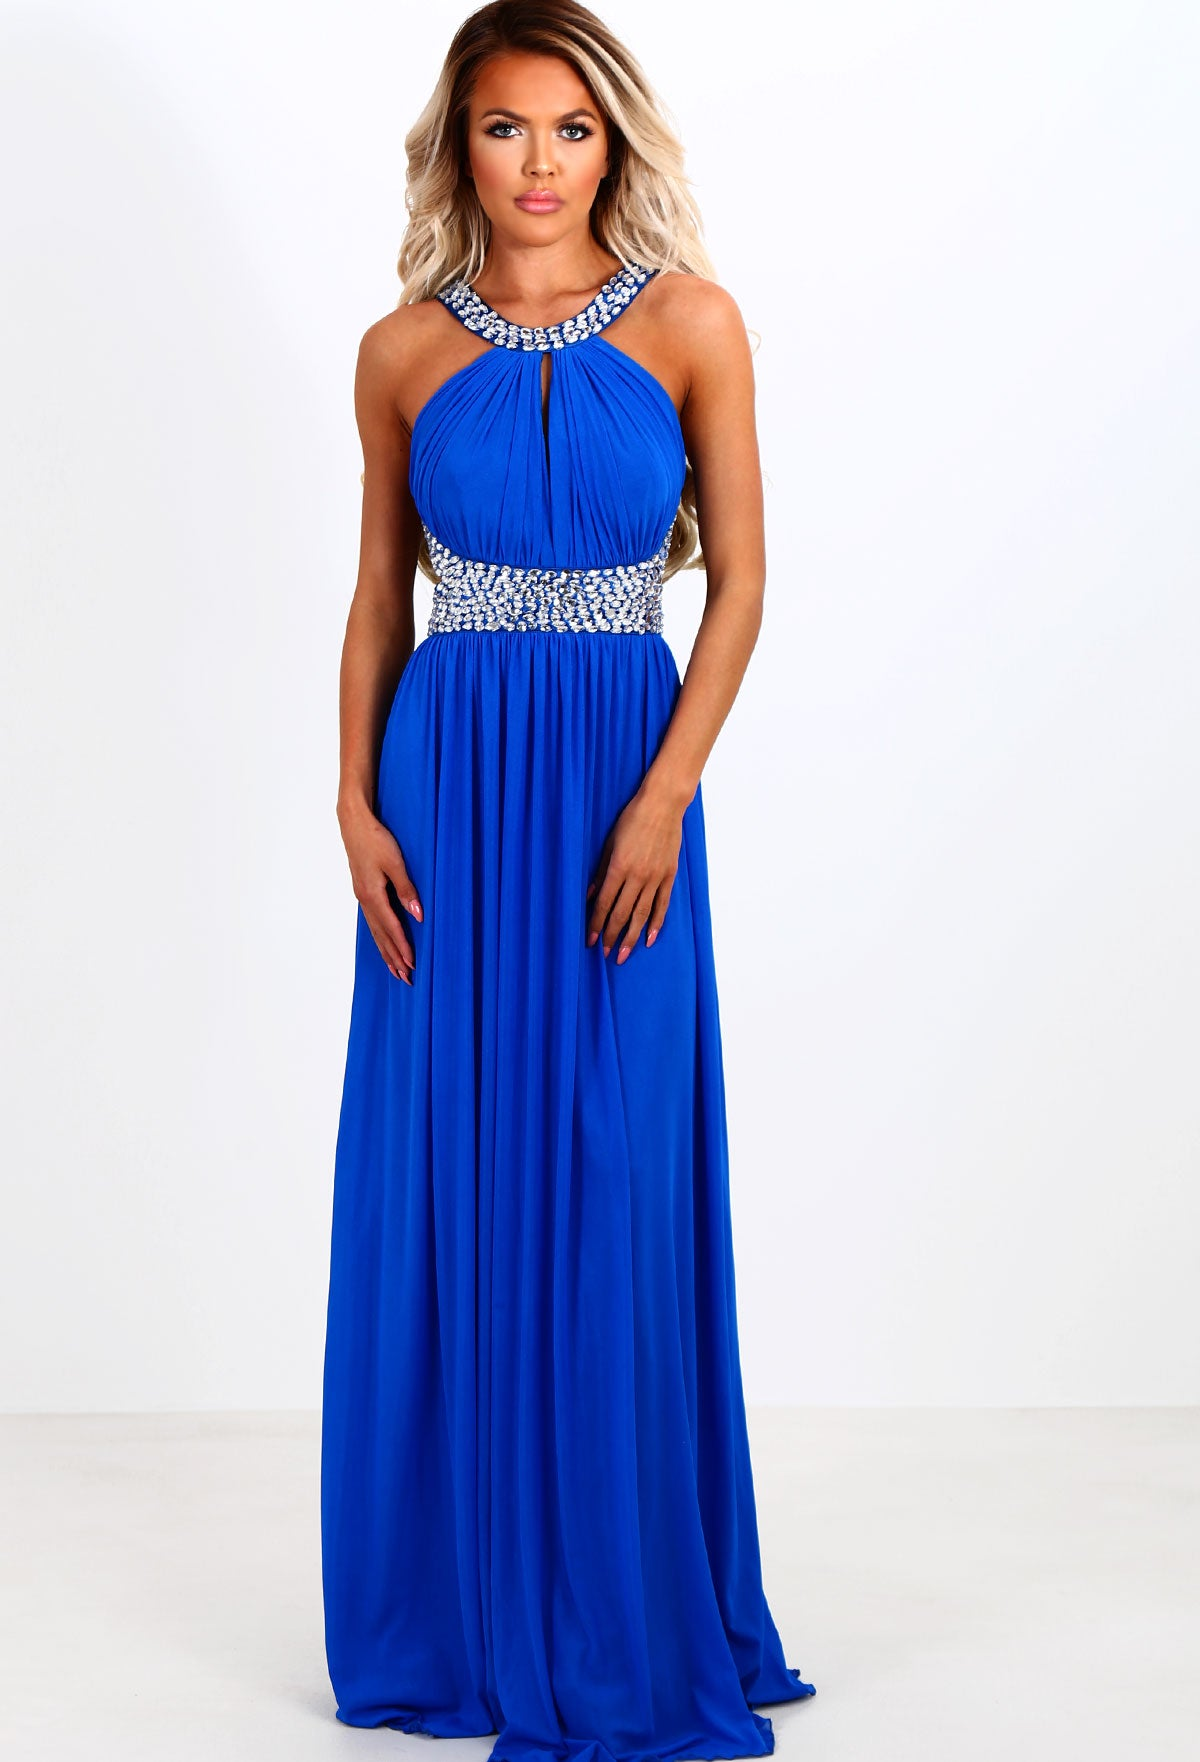 863709b4f3 Limited Edition Last Dance Royal Blue Grecian Diamante Maxi Dress ...